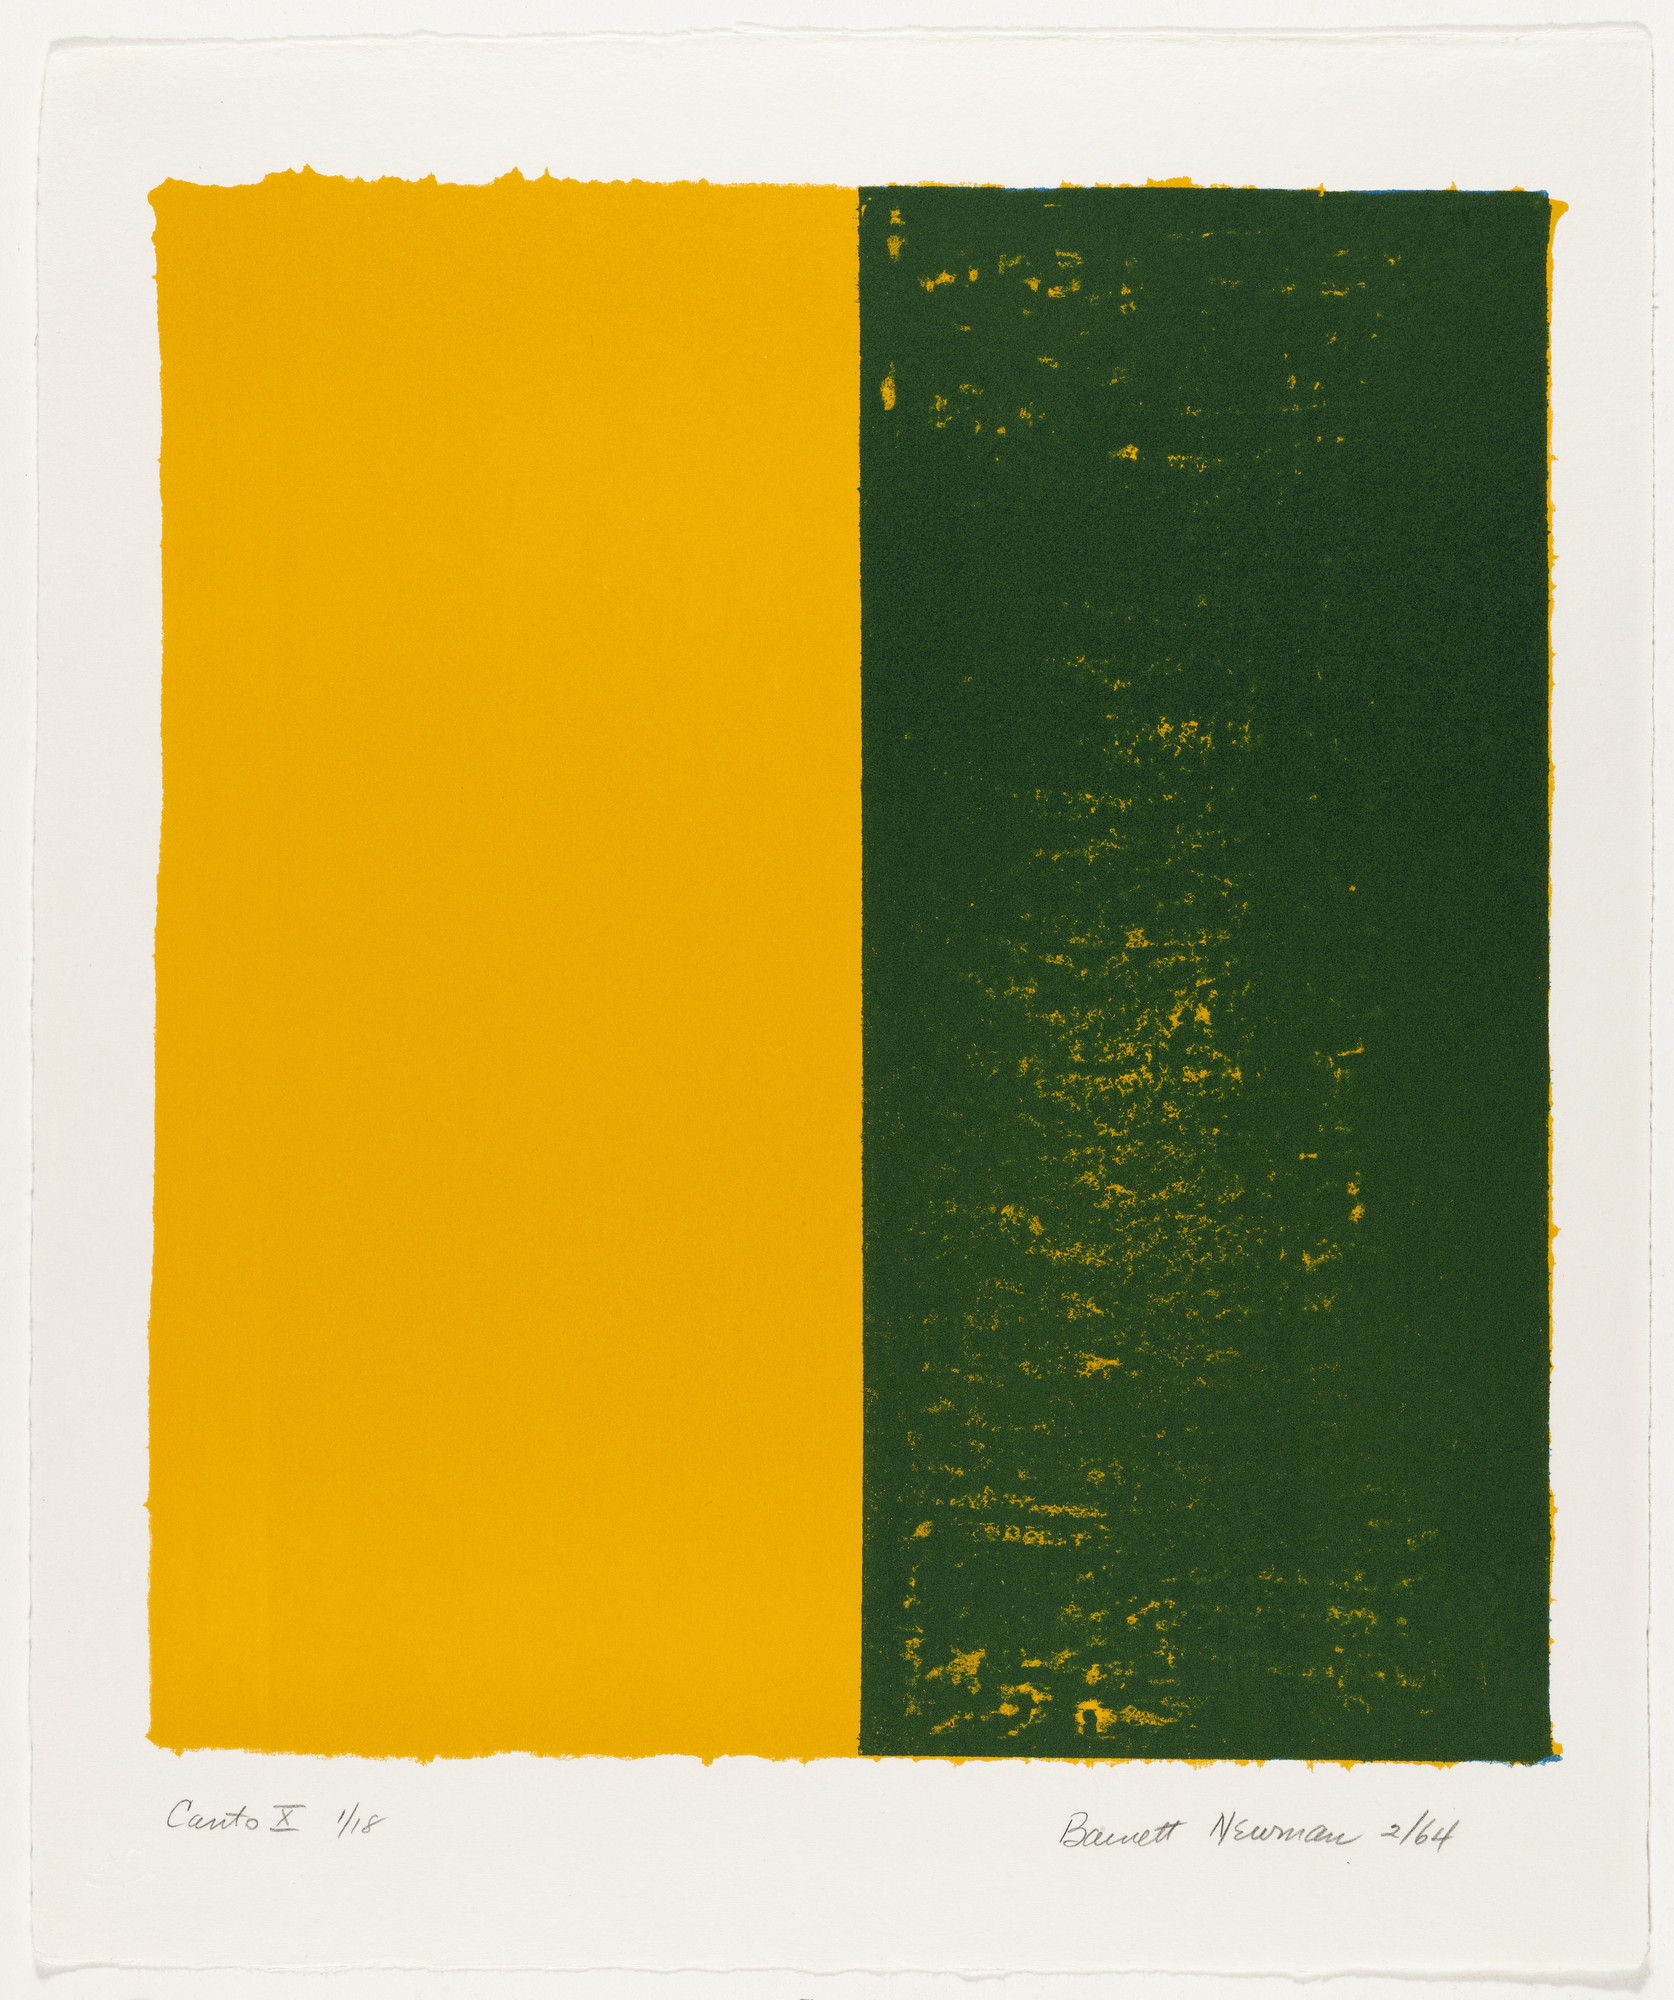 Barnett Newman. Canto X from 18 Cantos. 1964